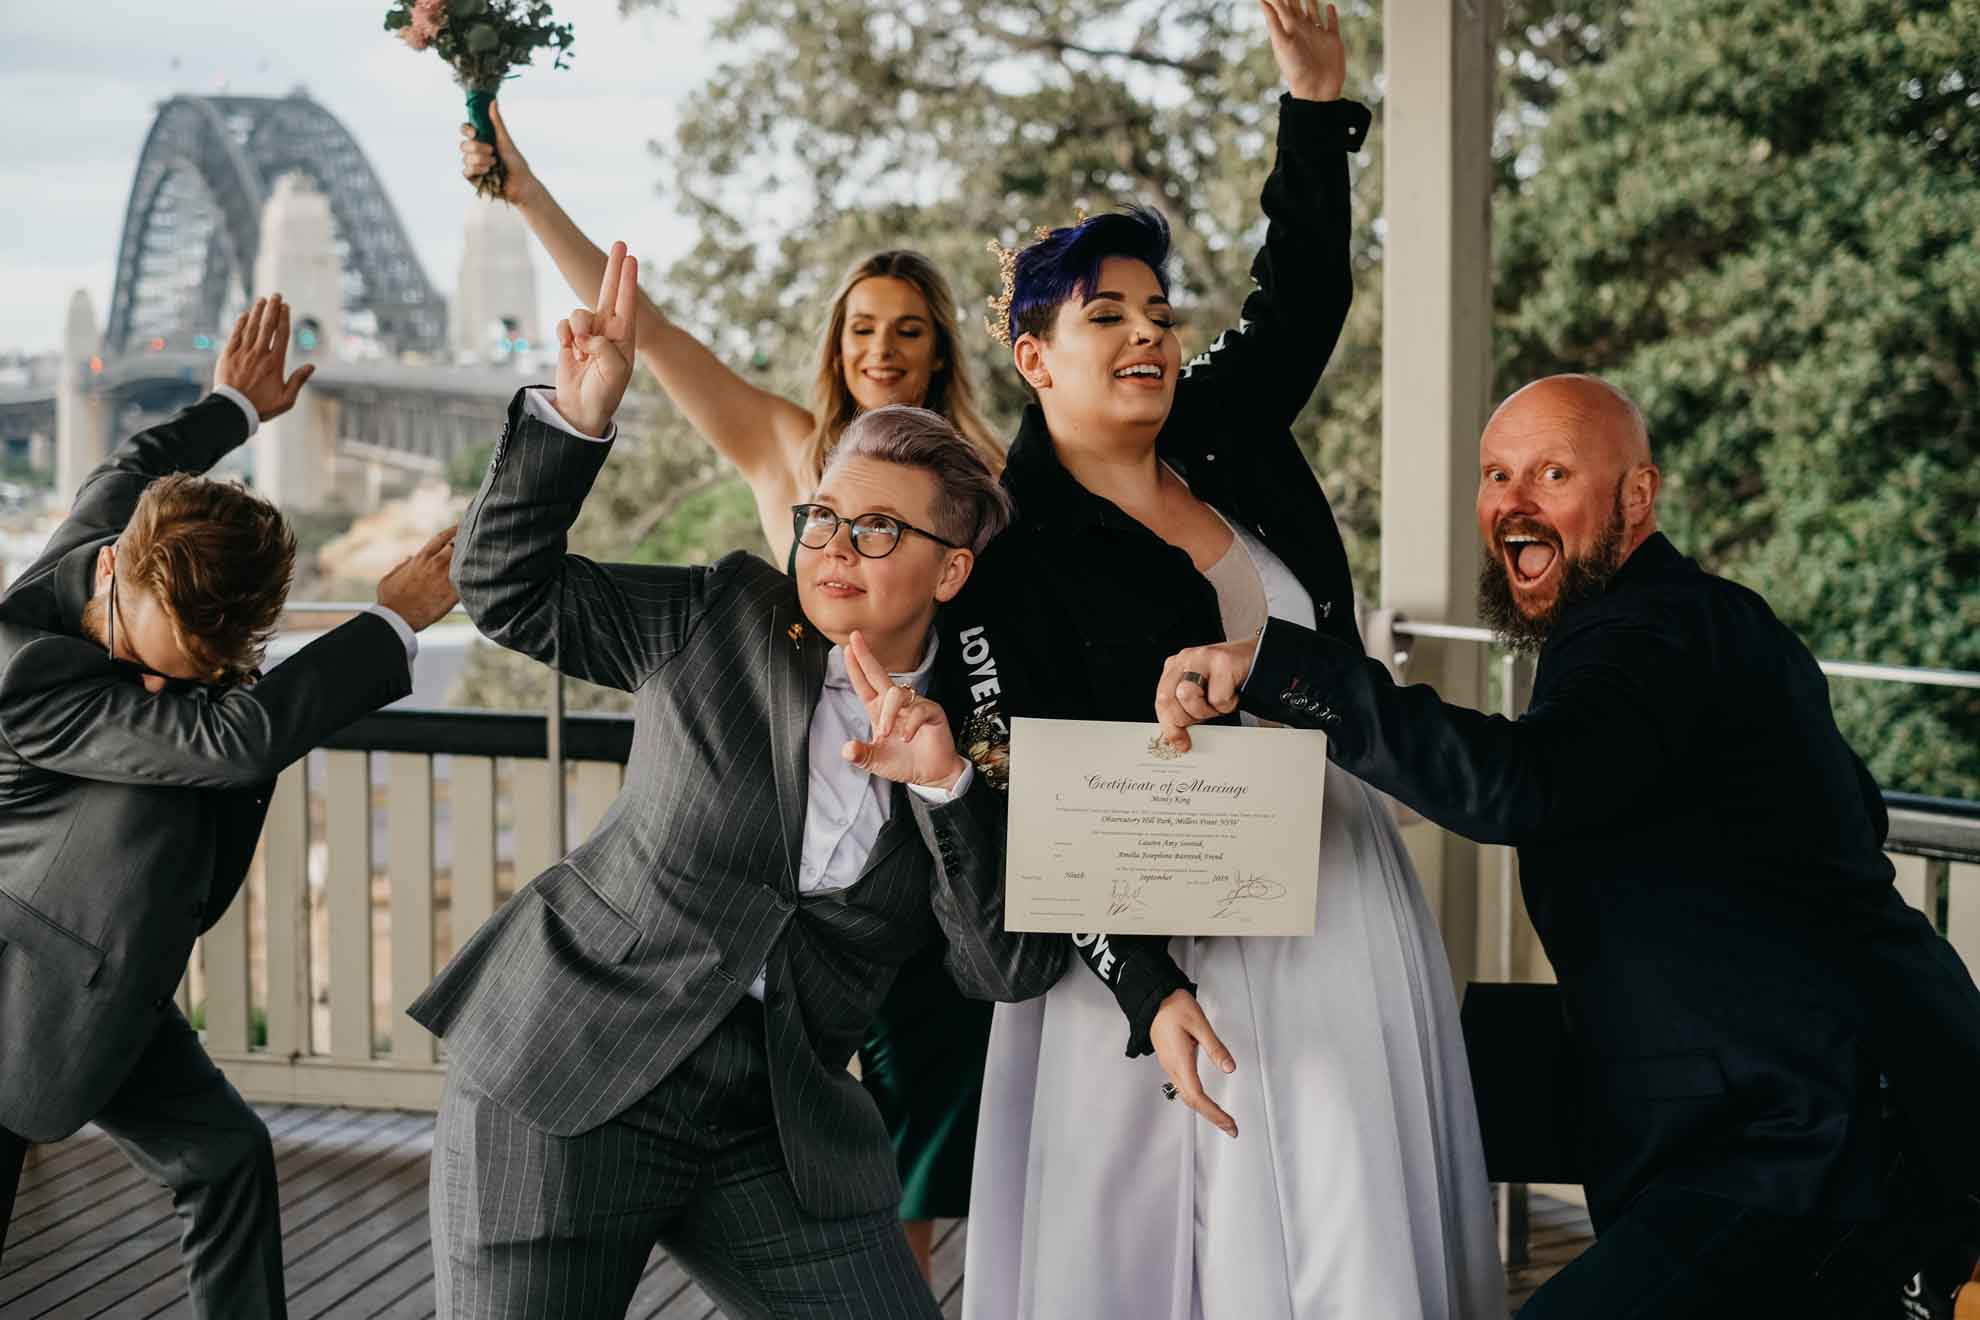 Monty King - Celebrant newcastle new south wales australia lesbian gay queer wedding elopement dancing with her magazine vendor